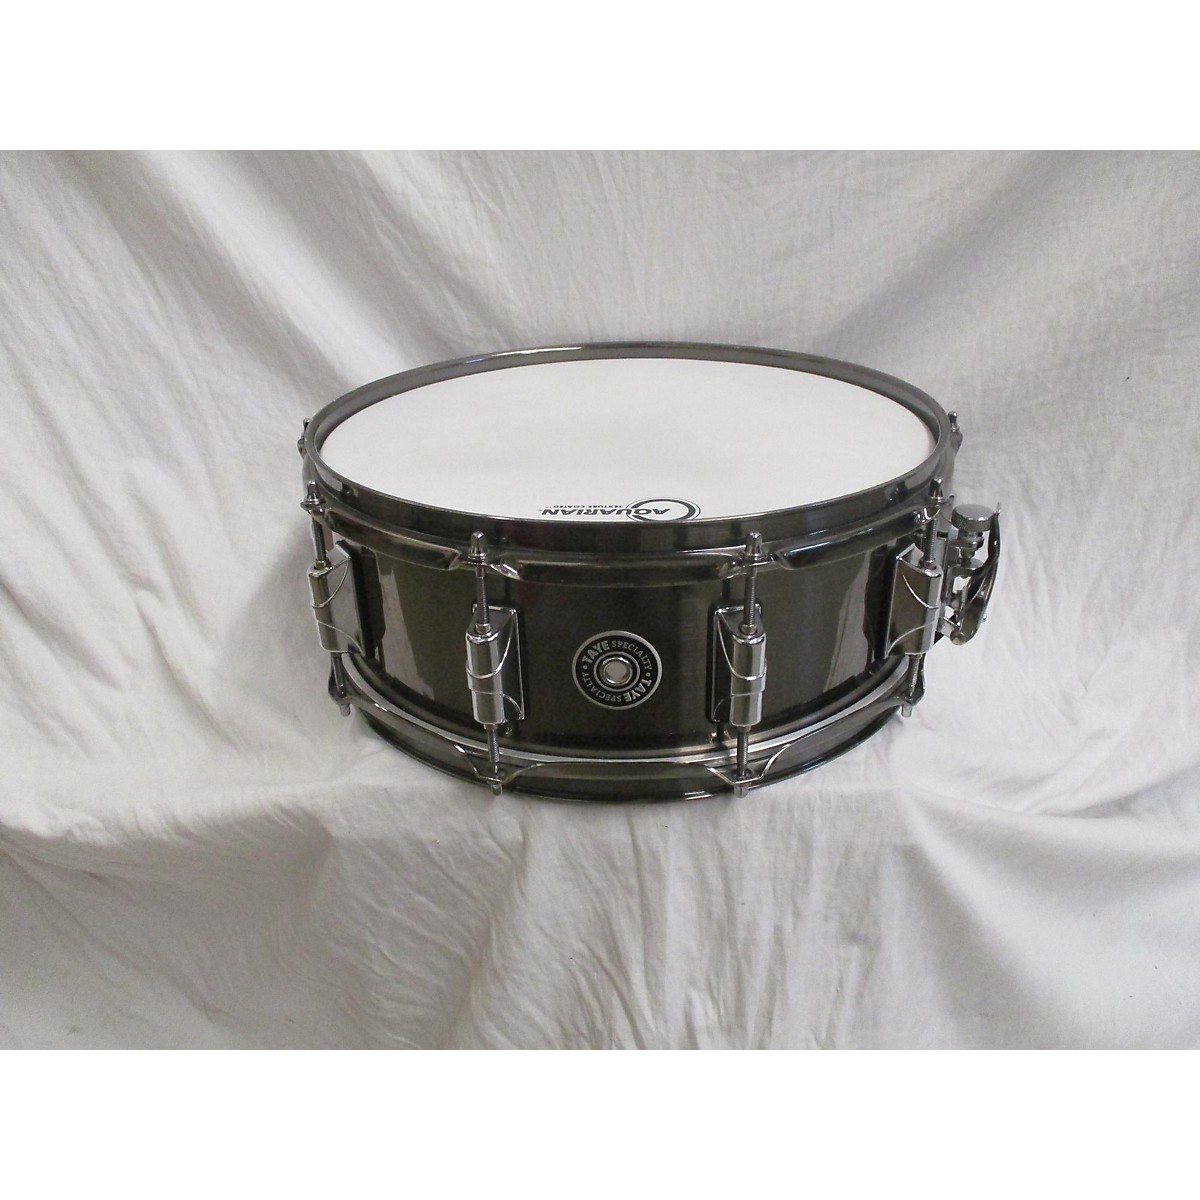 Taye Drums 5X14 Specialty Snare Drum